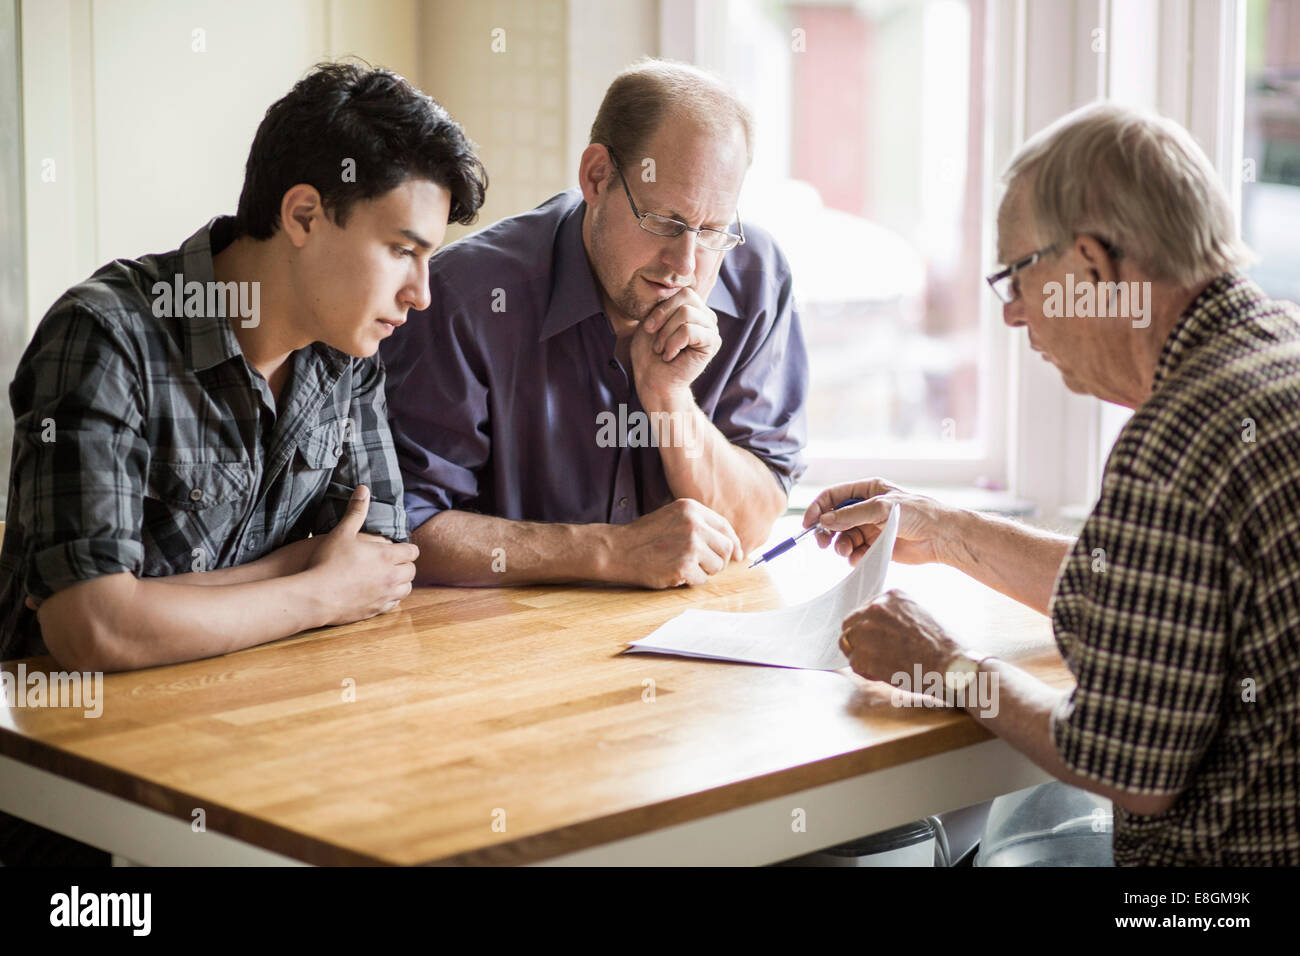 Family discussing over documents at table - Stock Image